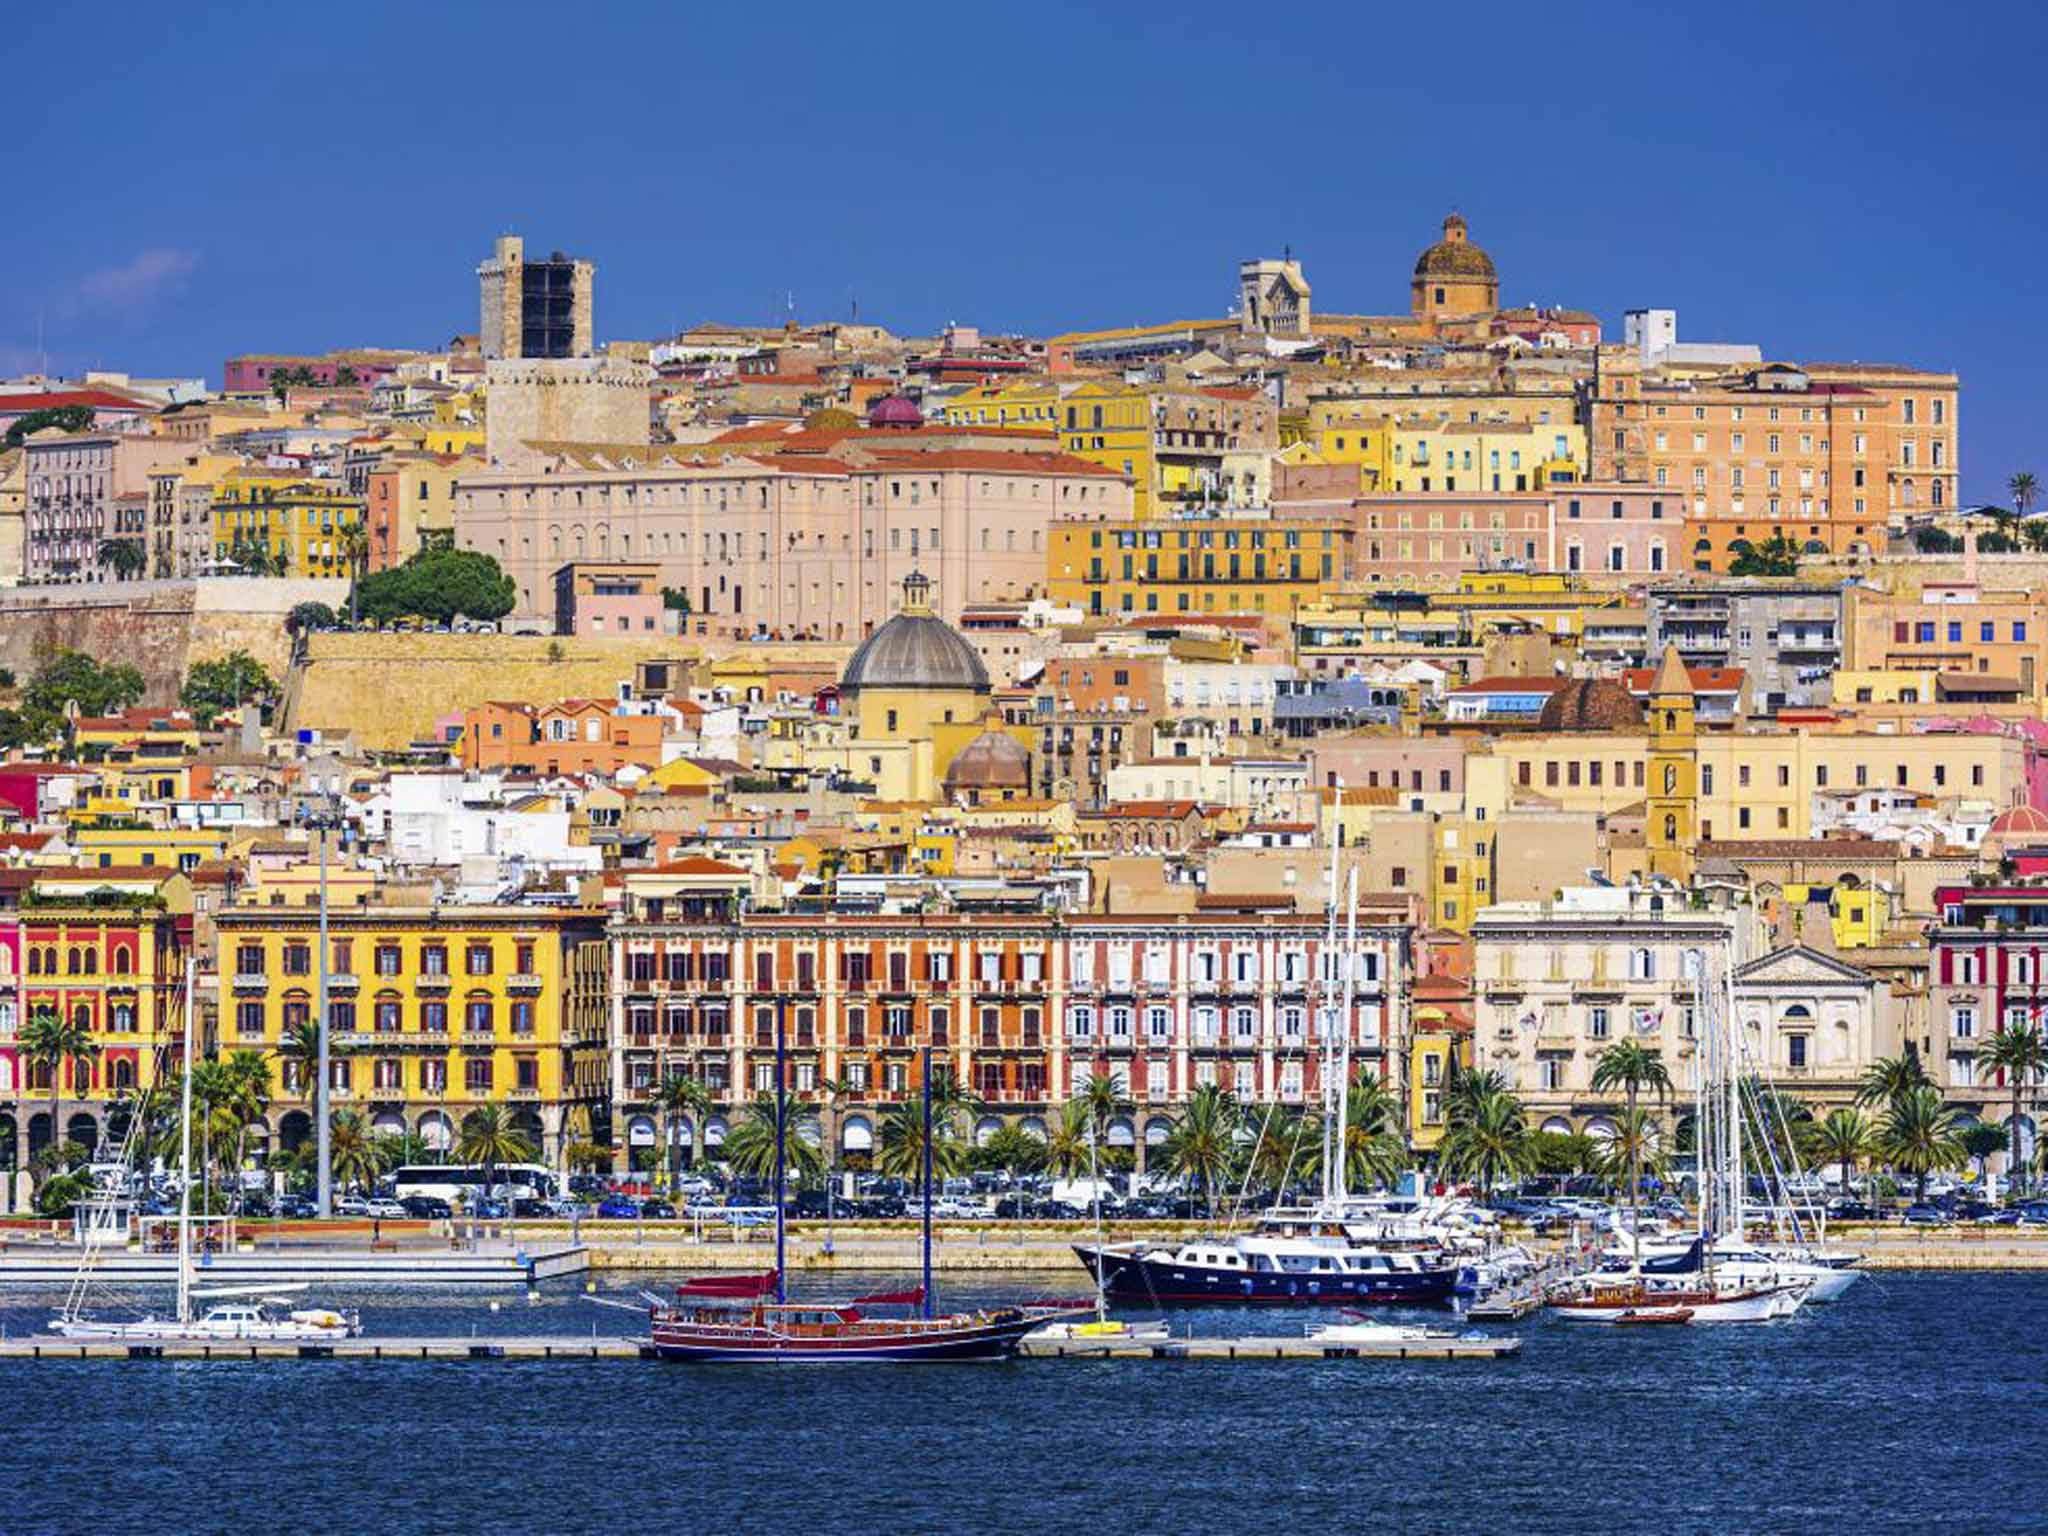 Cagliari travel tips: Where to go and what to see in 48 hours ...